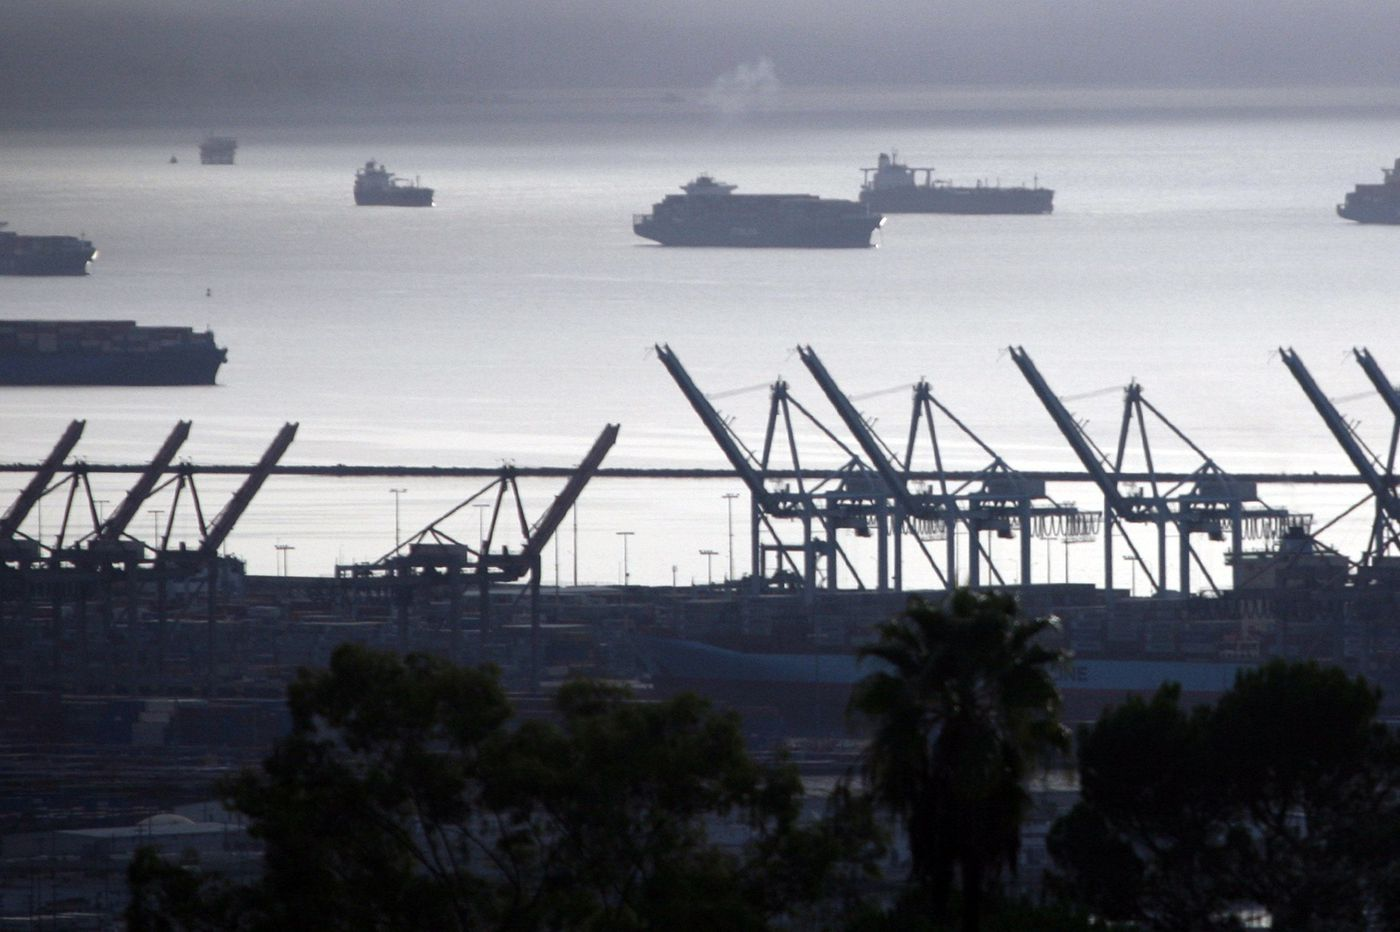 As L.A. ports automate, some workers are cheering on the robots